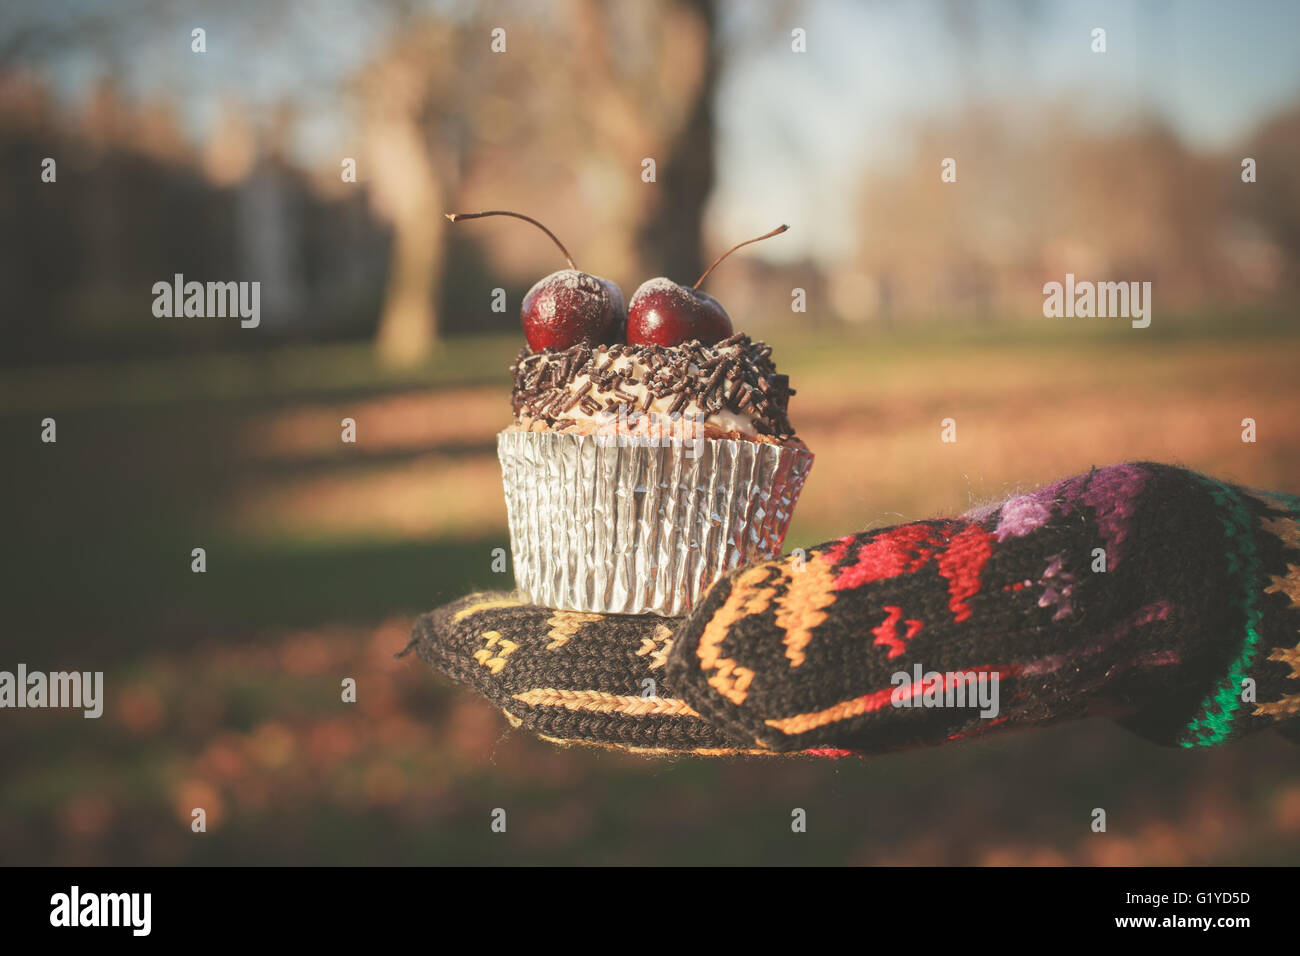 A gloved hand is holding a cupcake with a cherry on top - Stock Image